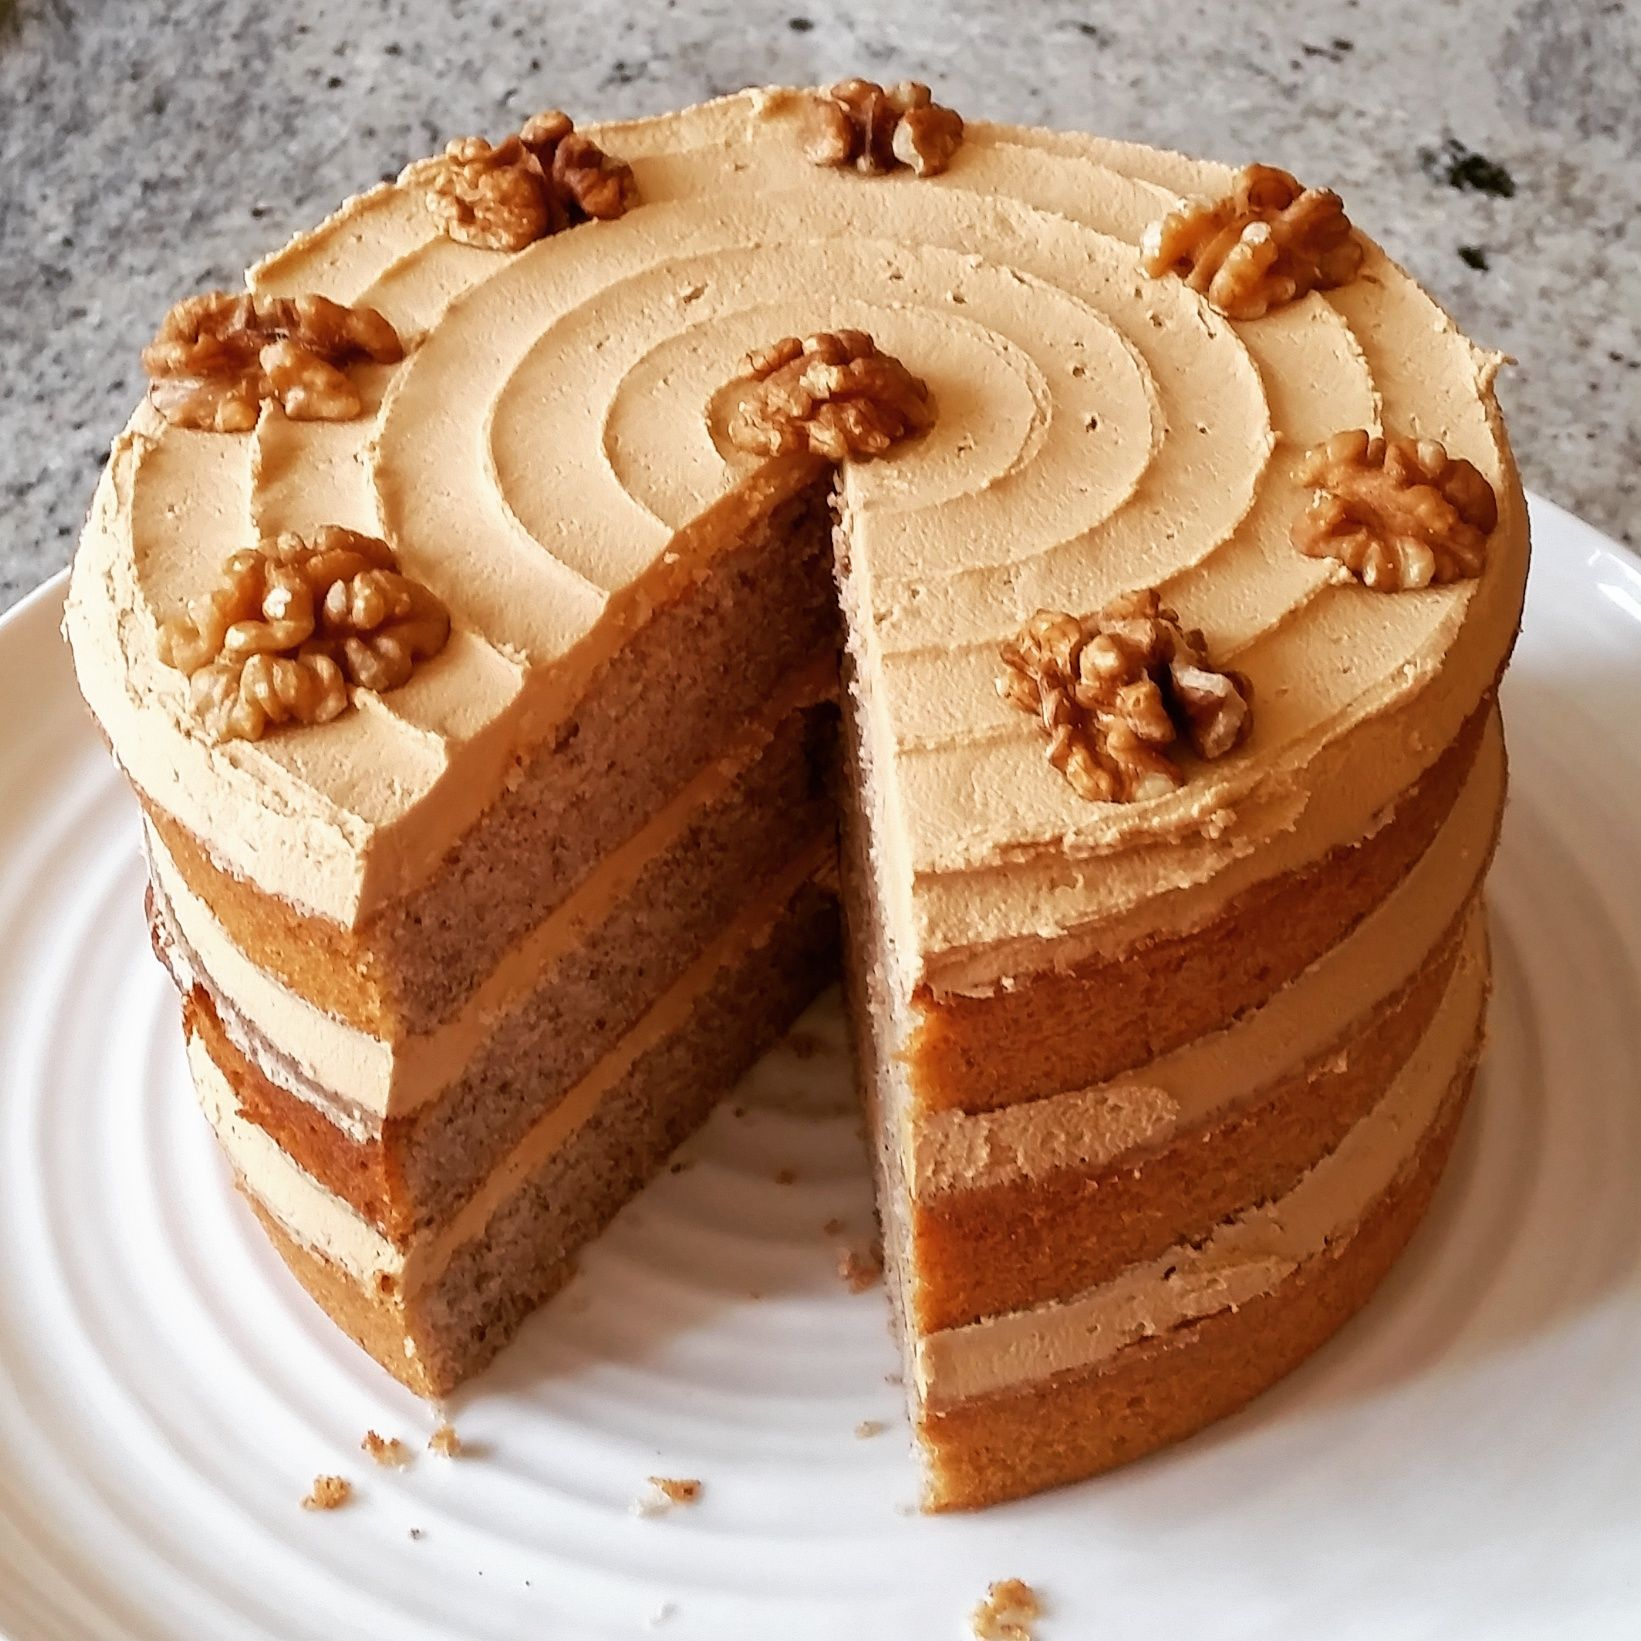 Coffee, Walnut Cake, Walnut Cake